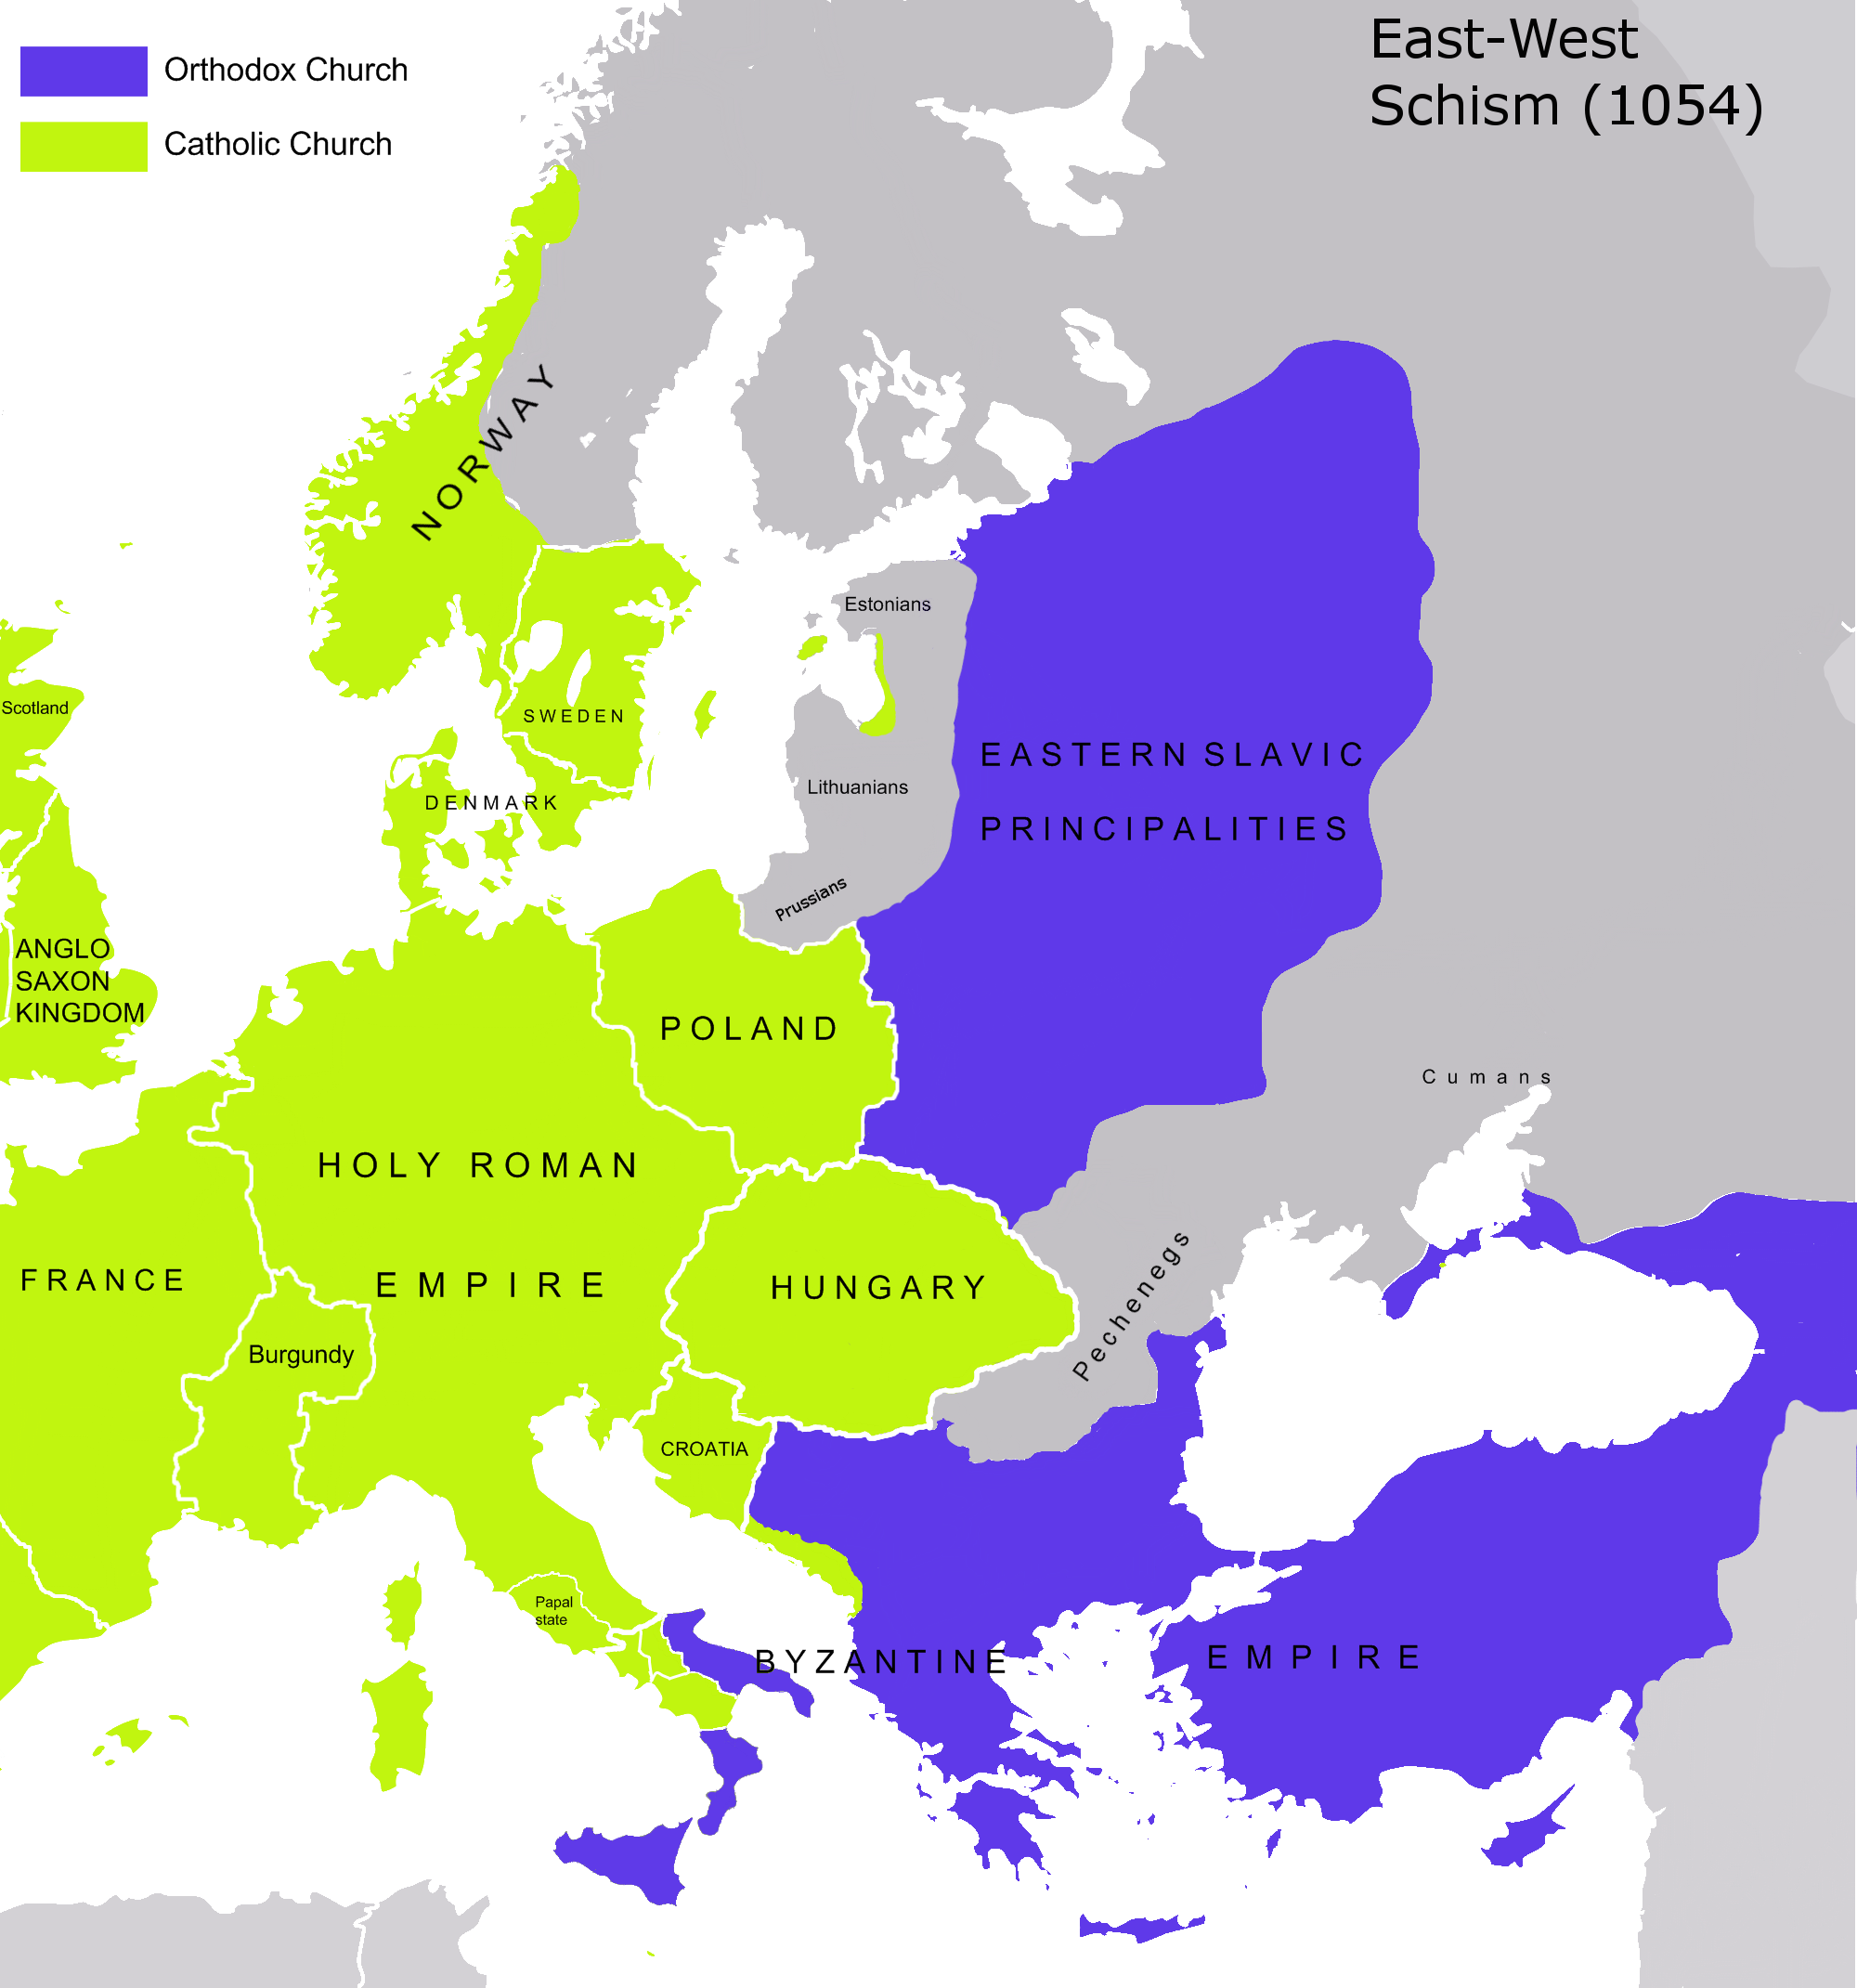 File:Great Schism 1054 with former borders-.png